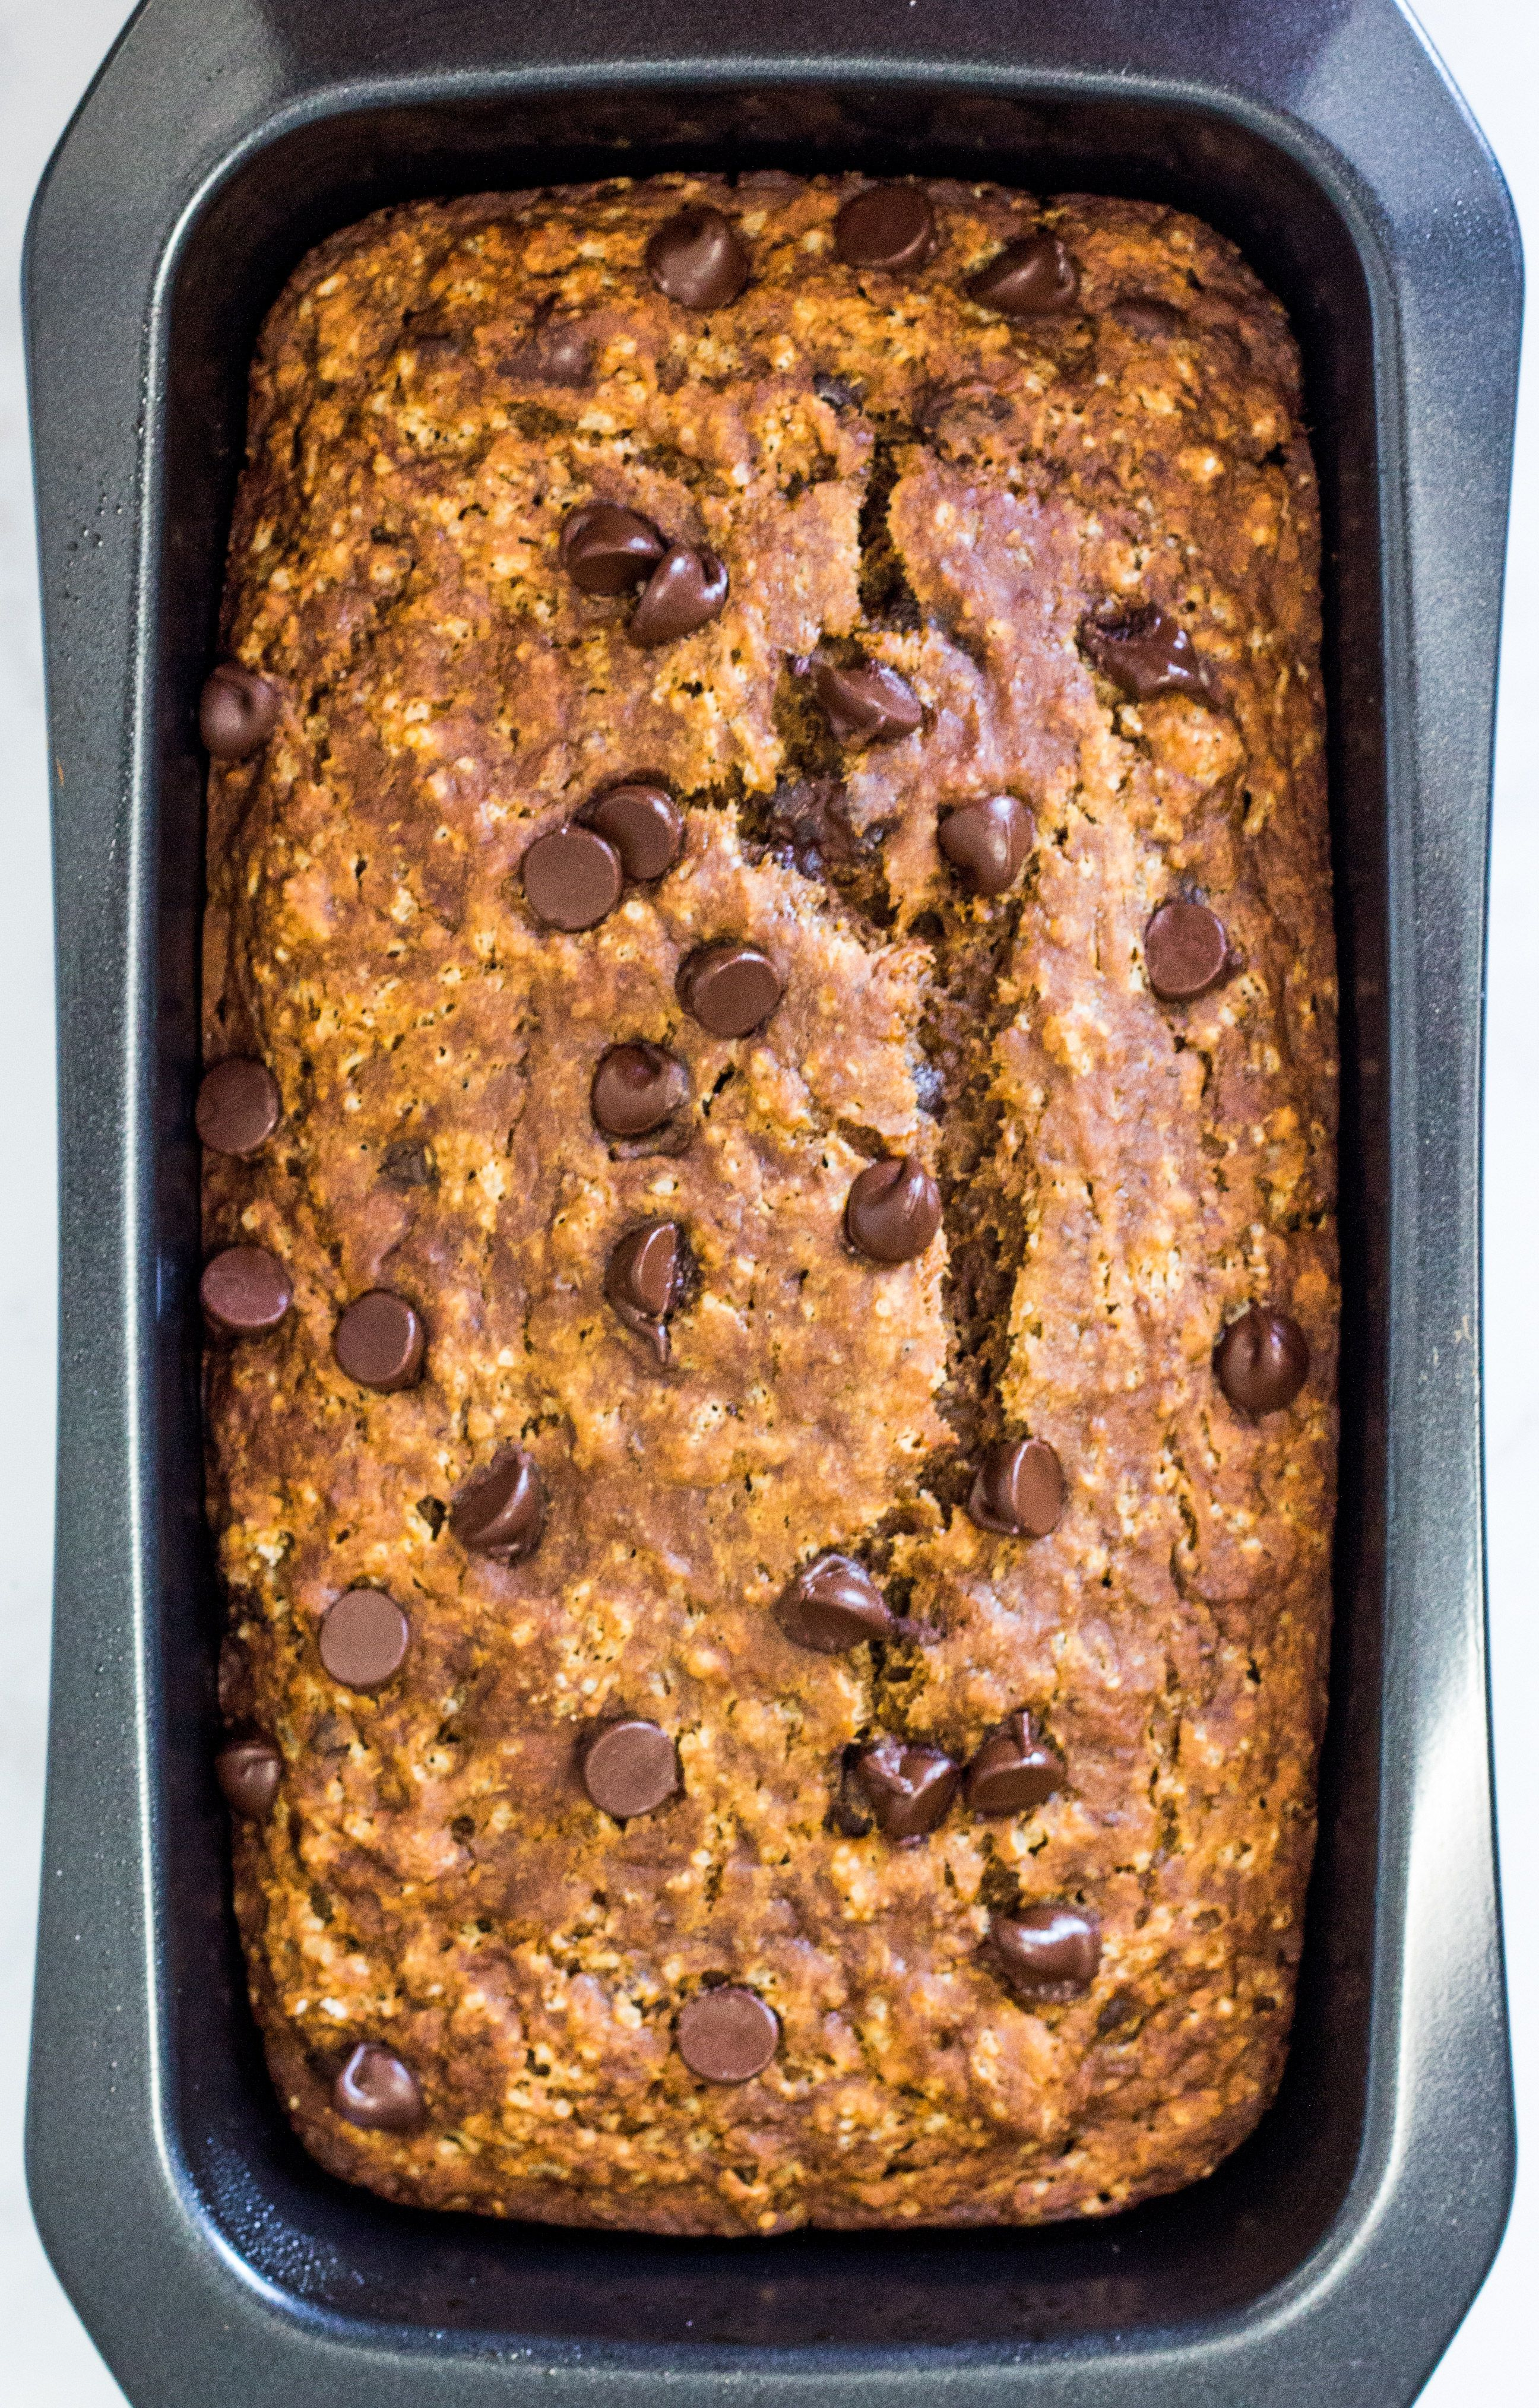 Moist and fluffy Gluten Free #Vegan Banana Bread with LOTS of Chocolate Chips. One bite of this soft and springy banana bread and you'd never guess it's #glutenfree #oilfree and #nutfree !!